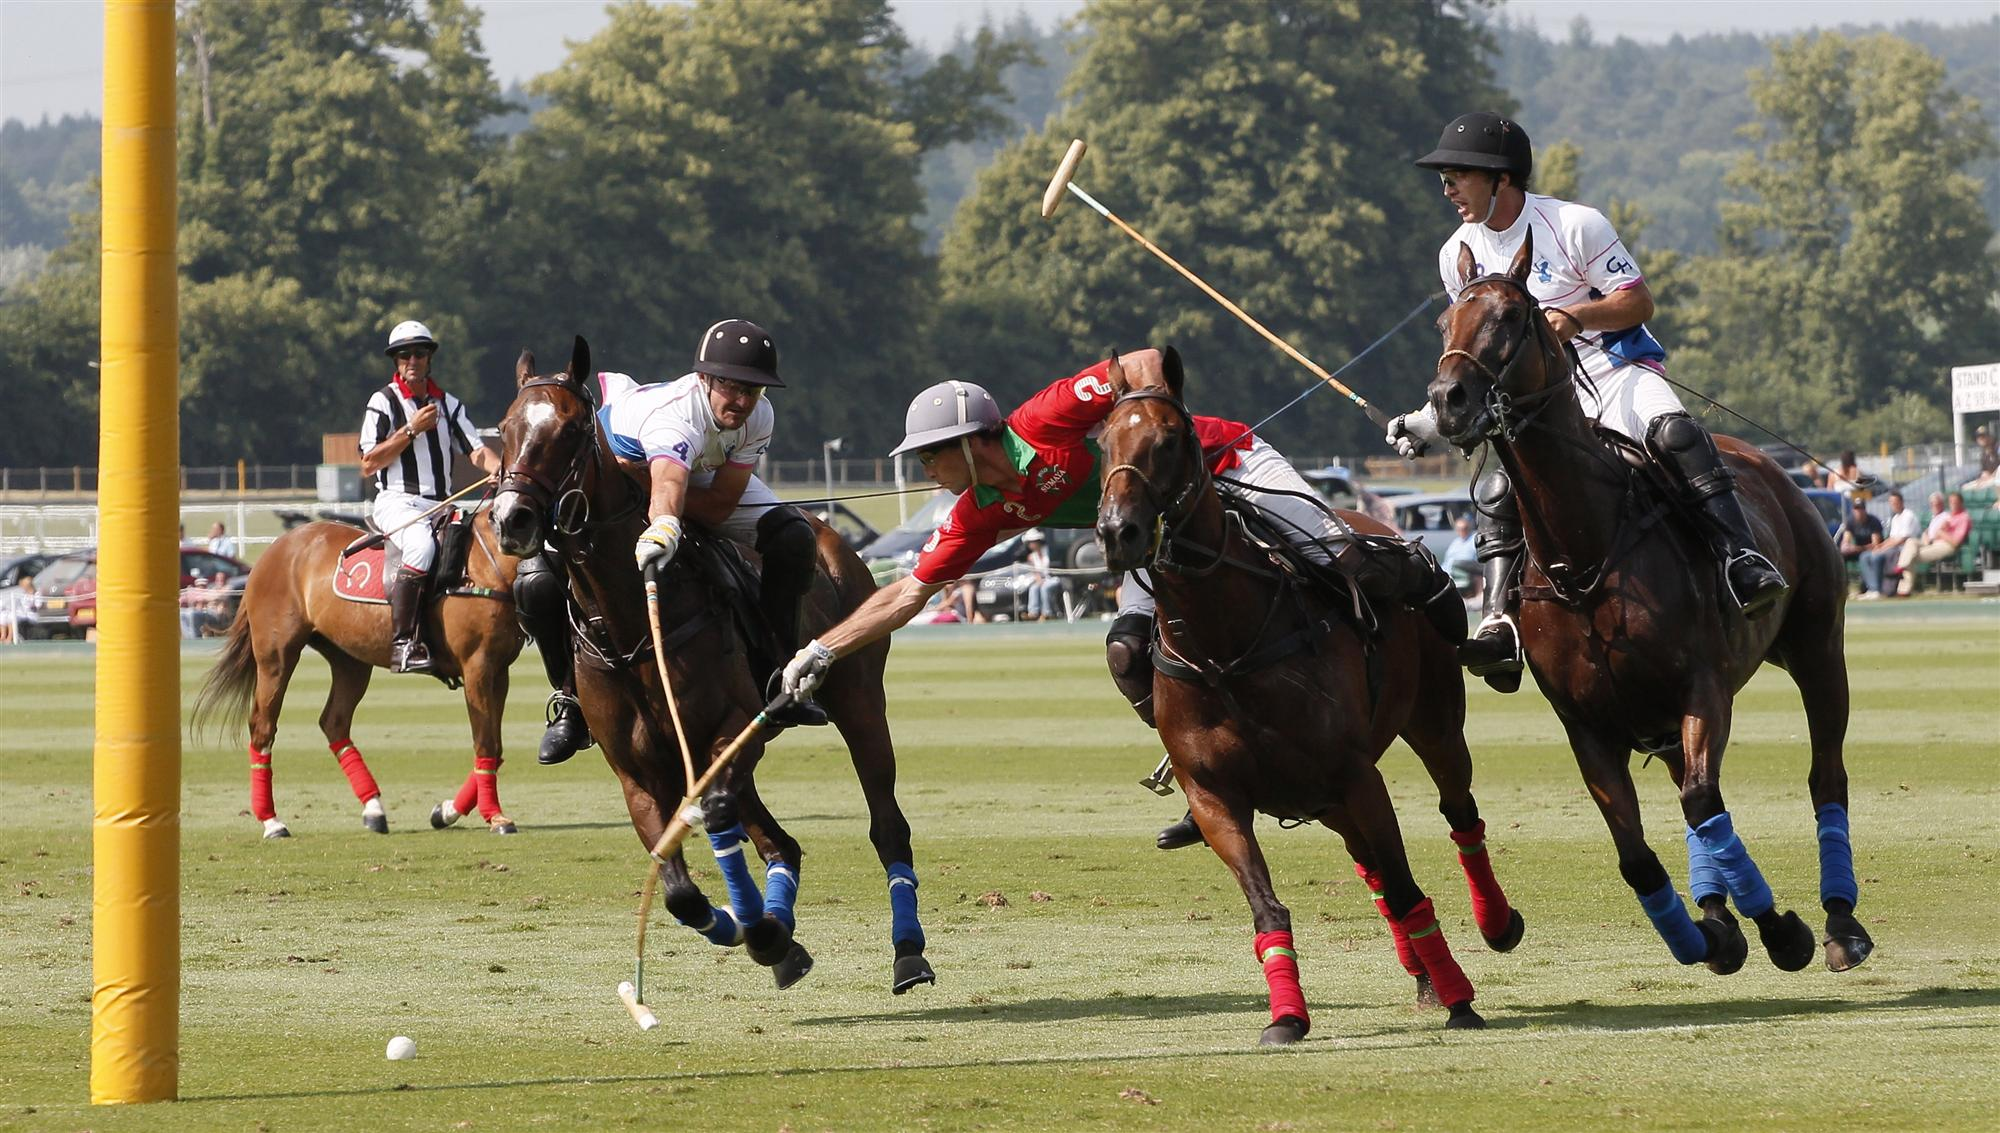 British Open Polo Championships Photos Part 1